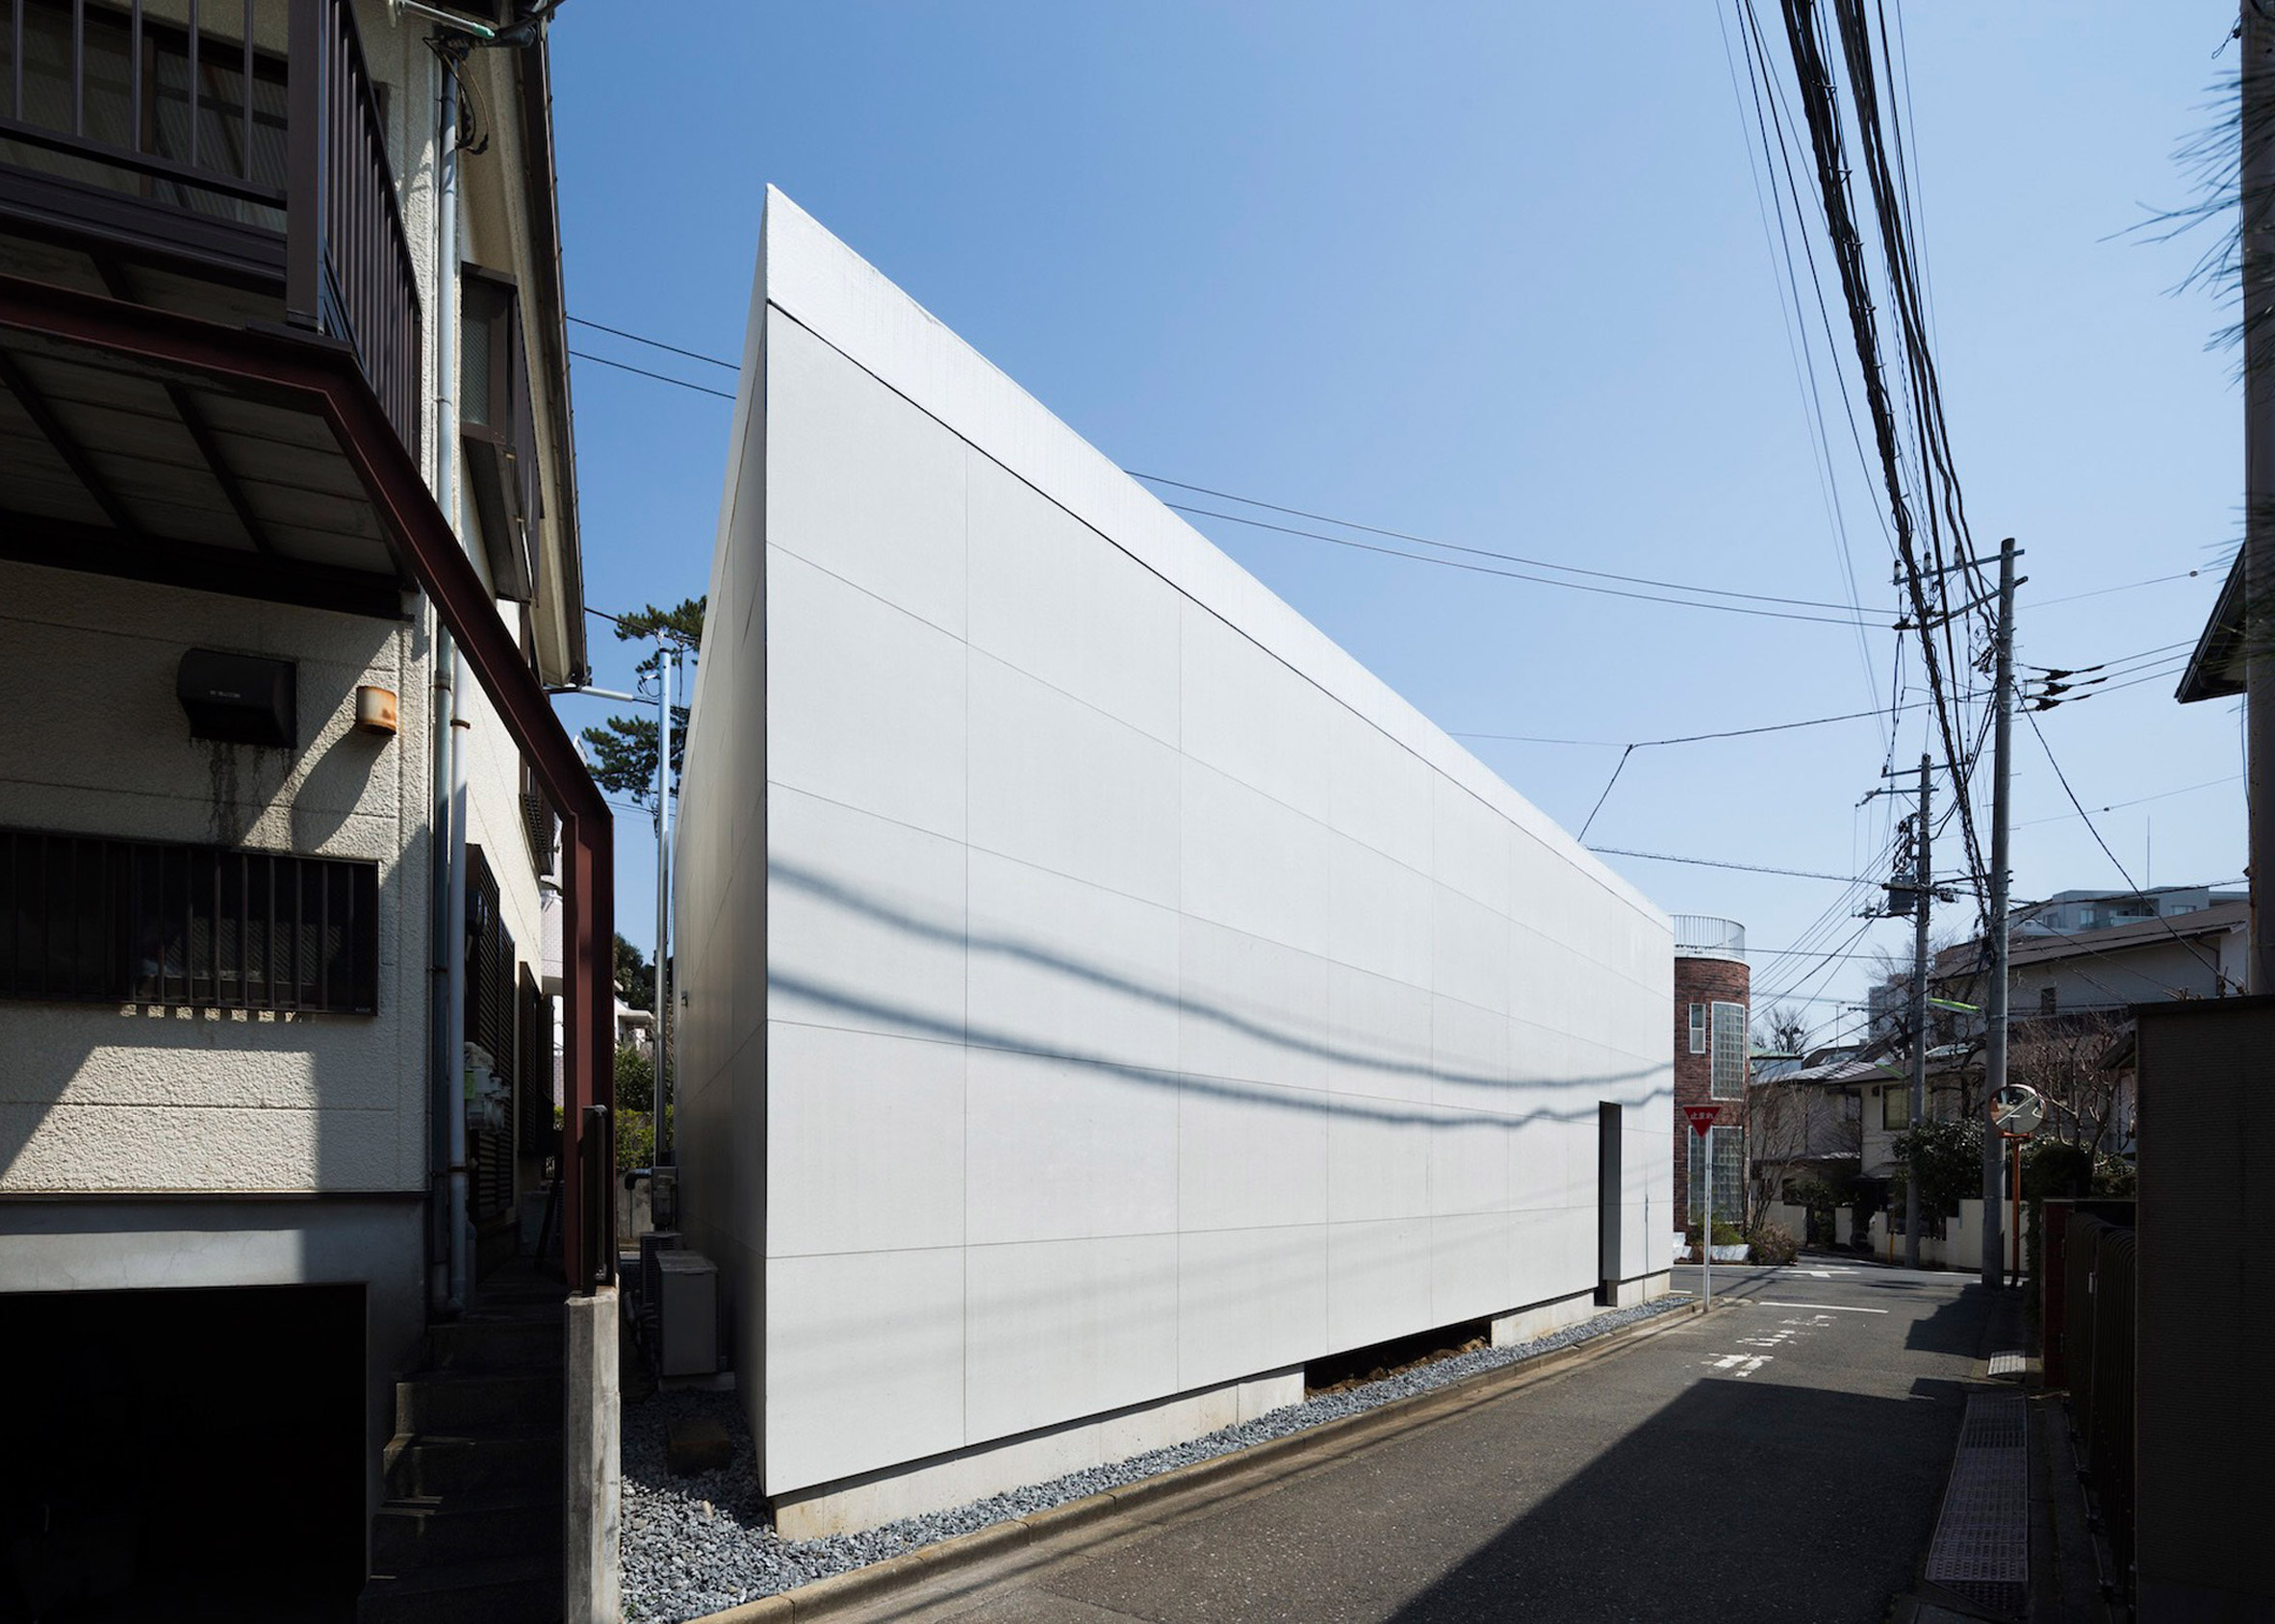 Bunker-like Japanese houses that offer total privacy